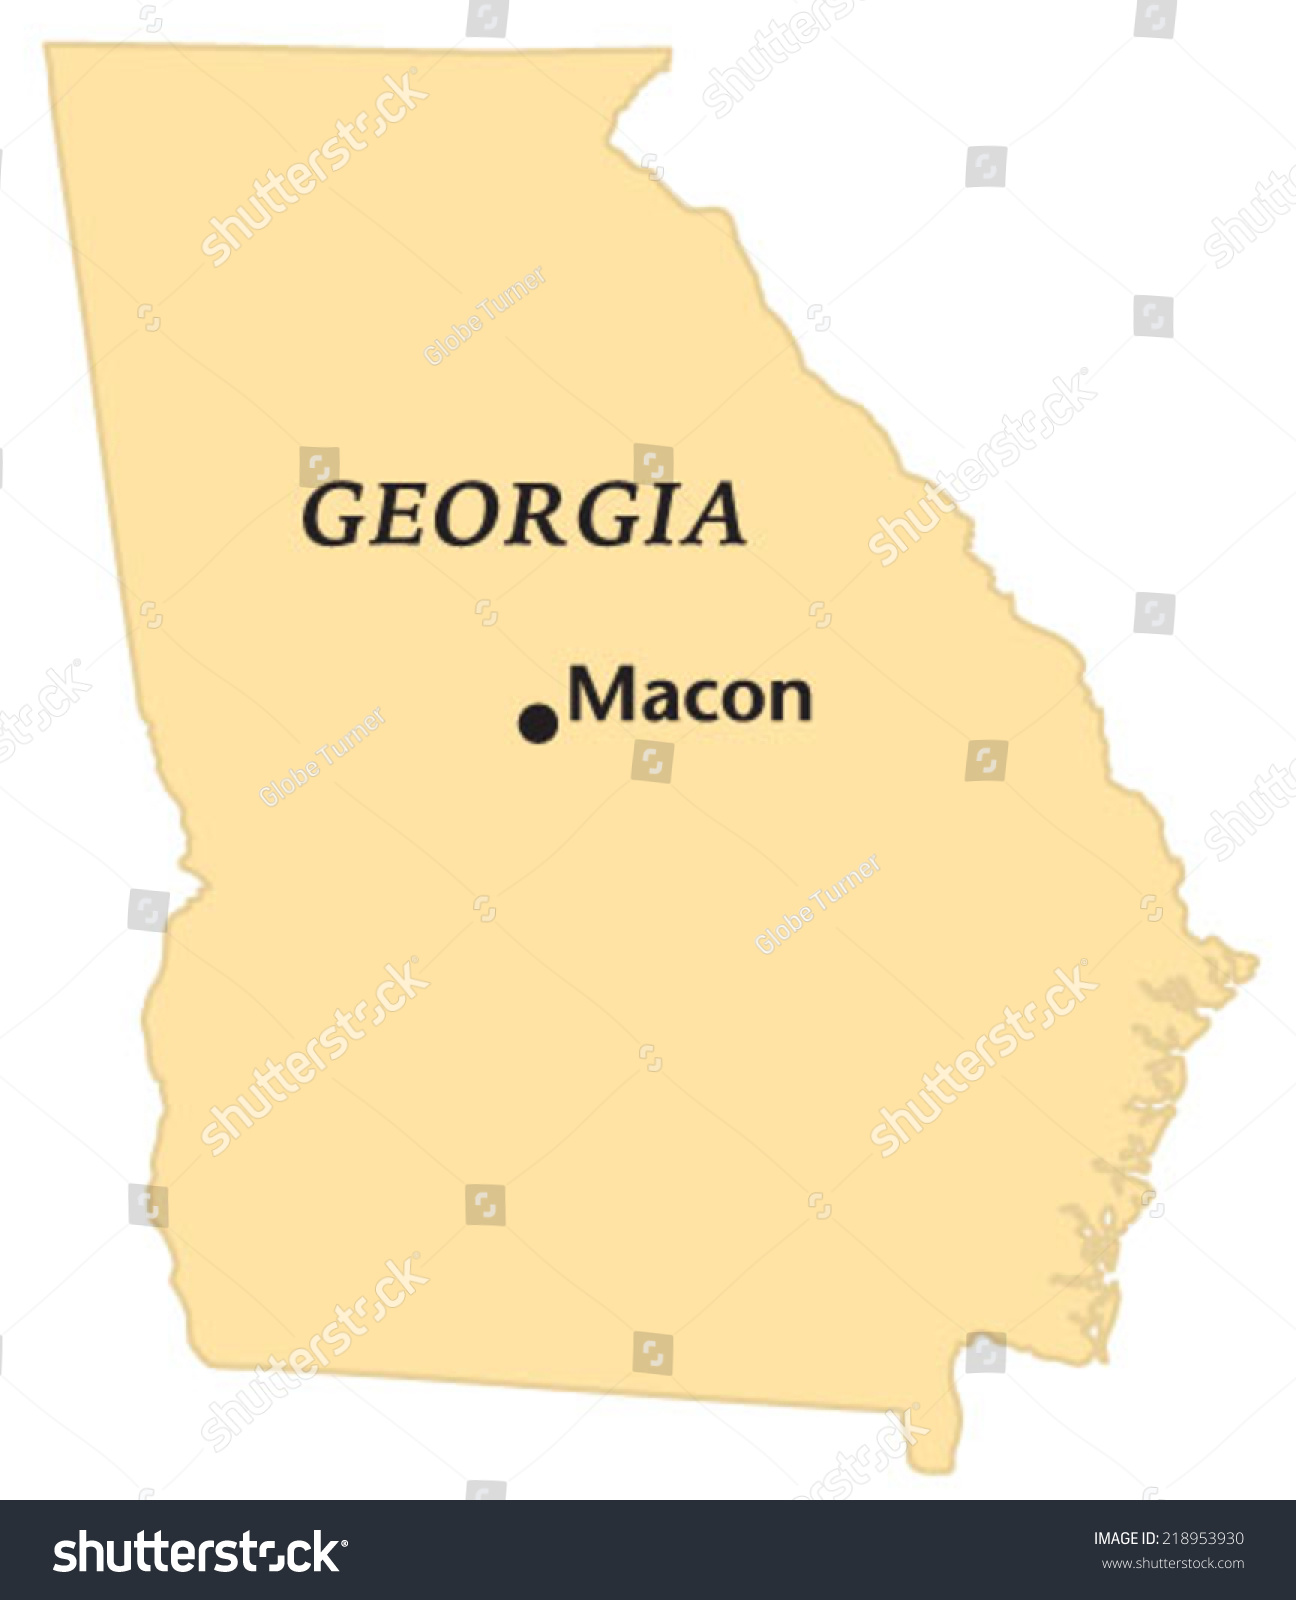 Macon Georgia Locate Map Stock Vector Shutterstock - Georgia map macon